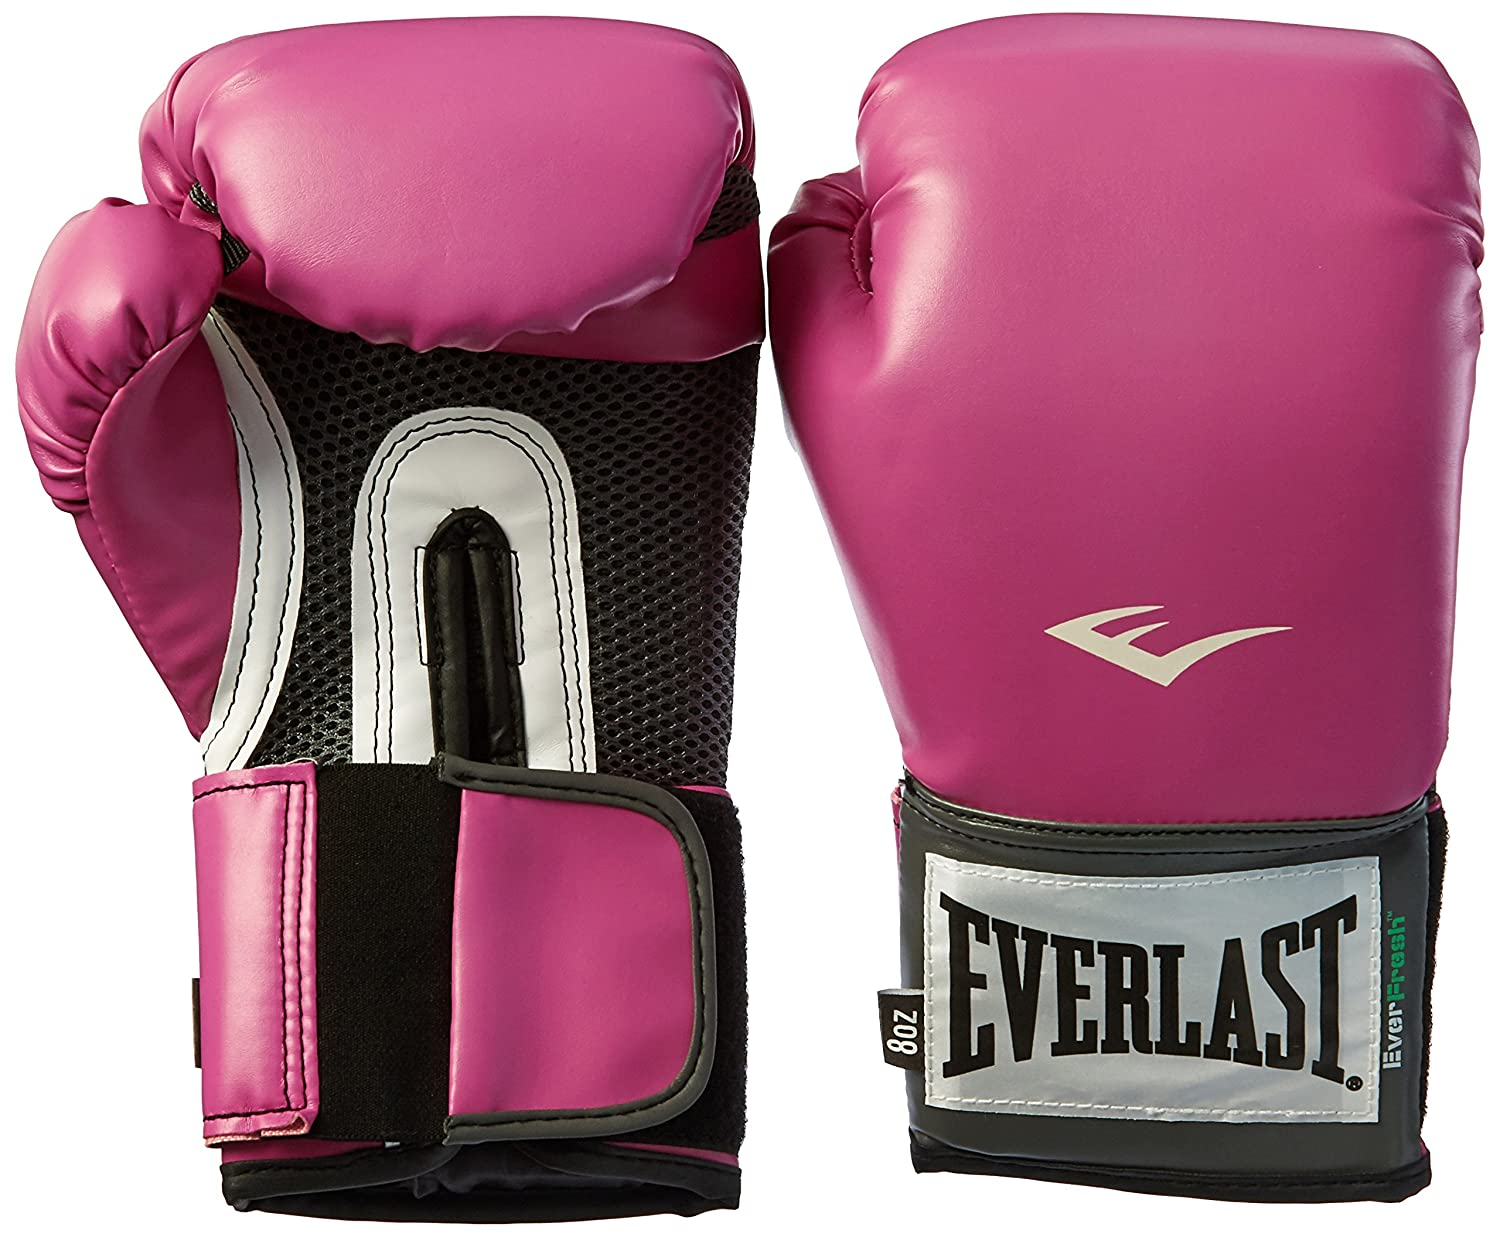 ddad81221 Amazon.com   Everlast Women s Pro Style Training Gloves   Training Boxing  Gloves   Sports   Outdoors